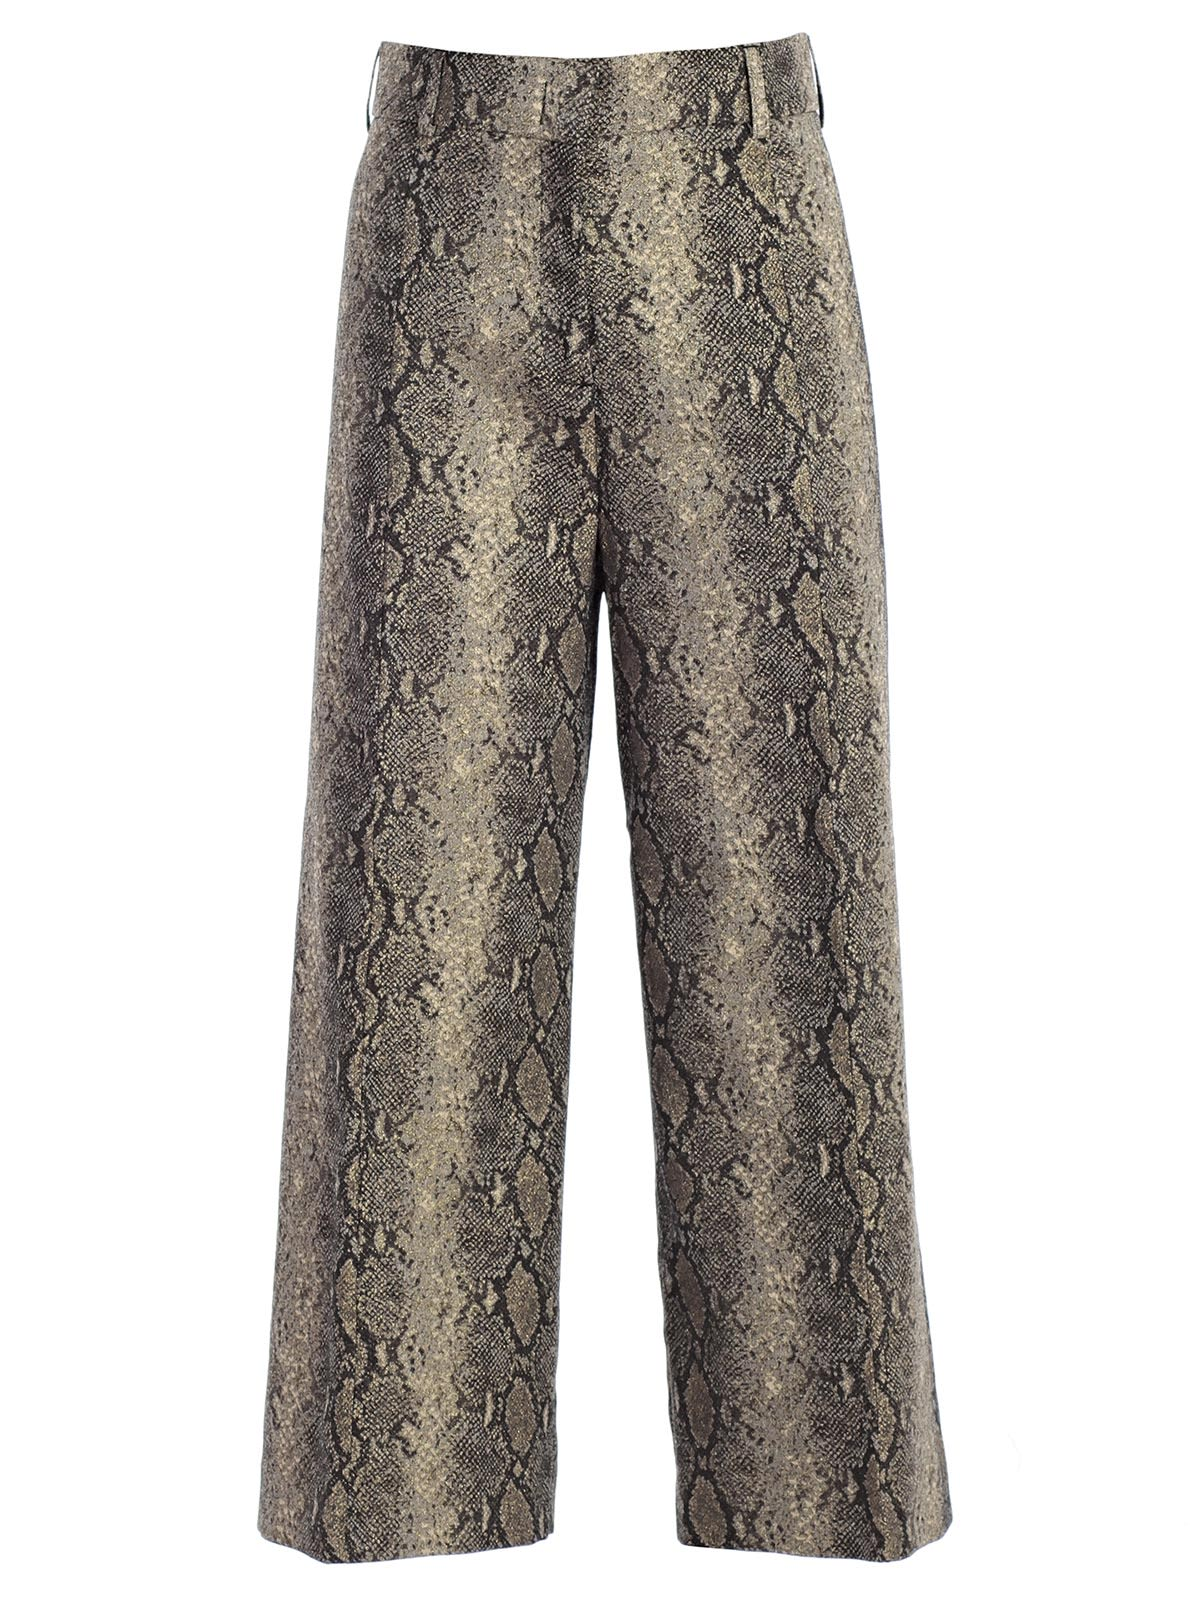 TWINSET SNAKE PRINT CROPPED TROUSERS